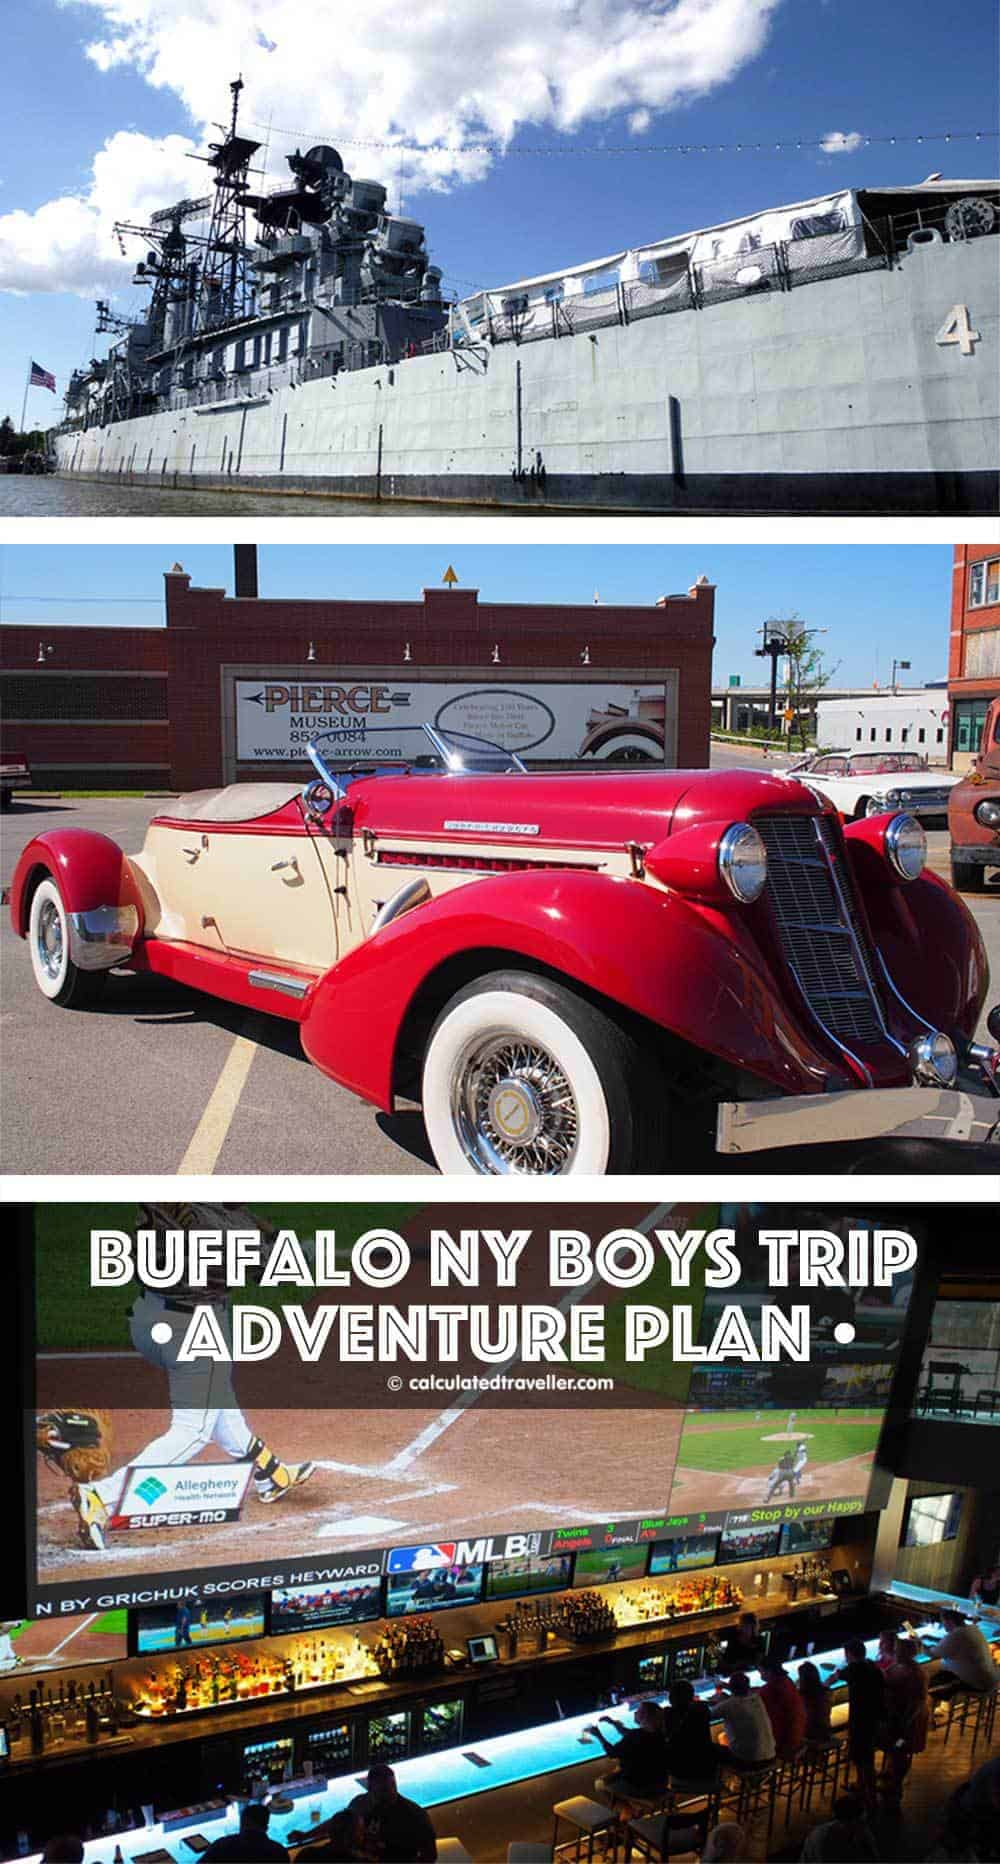 Buffalo NY Boys Trip Adventure Plan by Calculated Traveller.